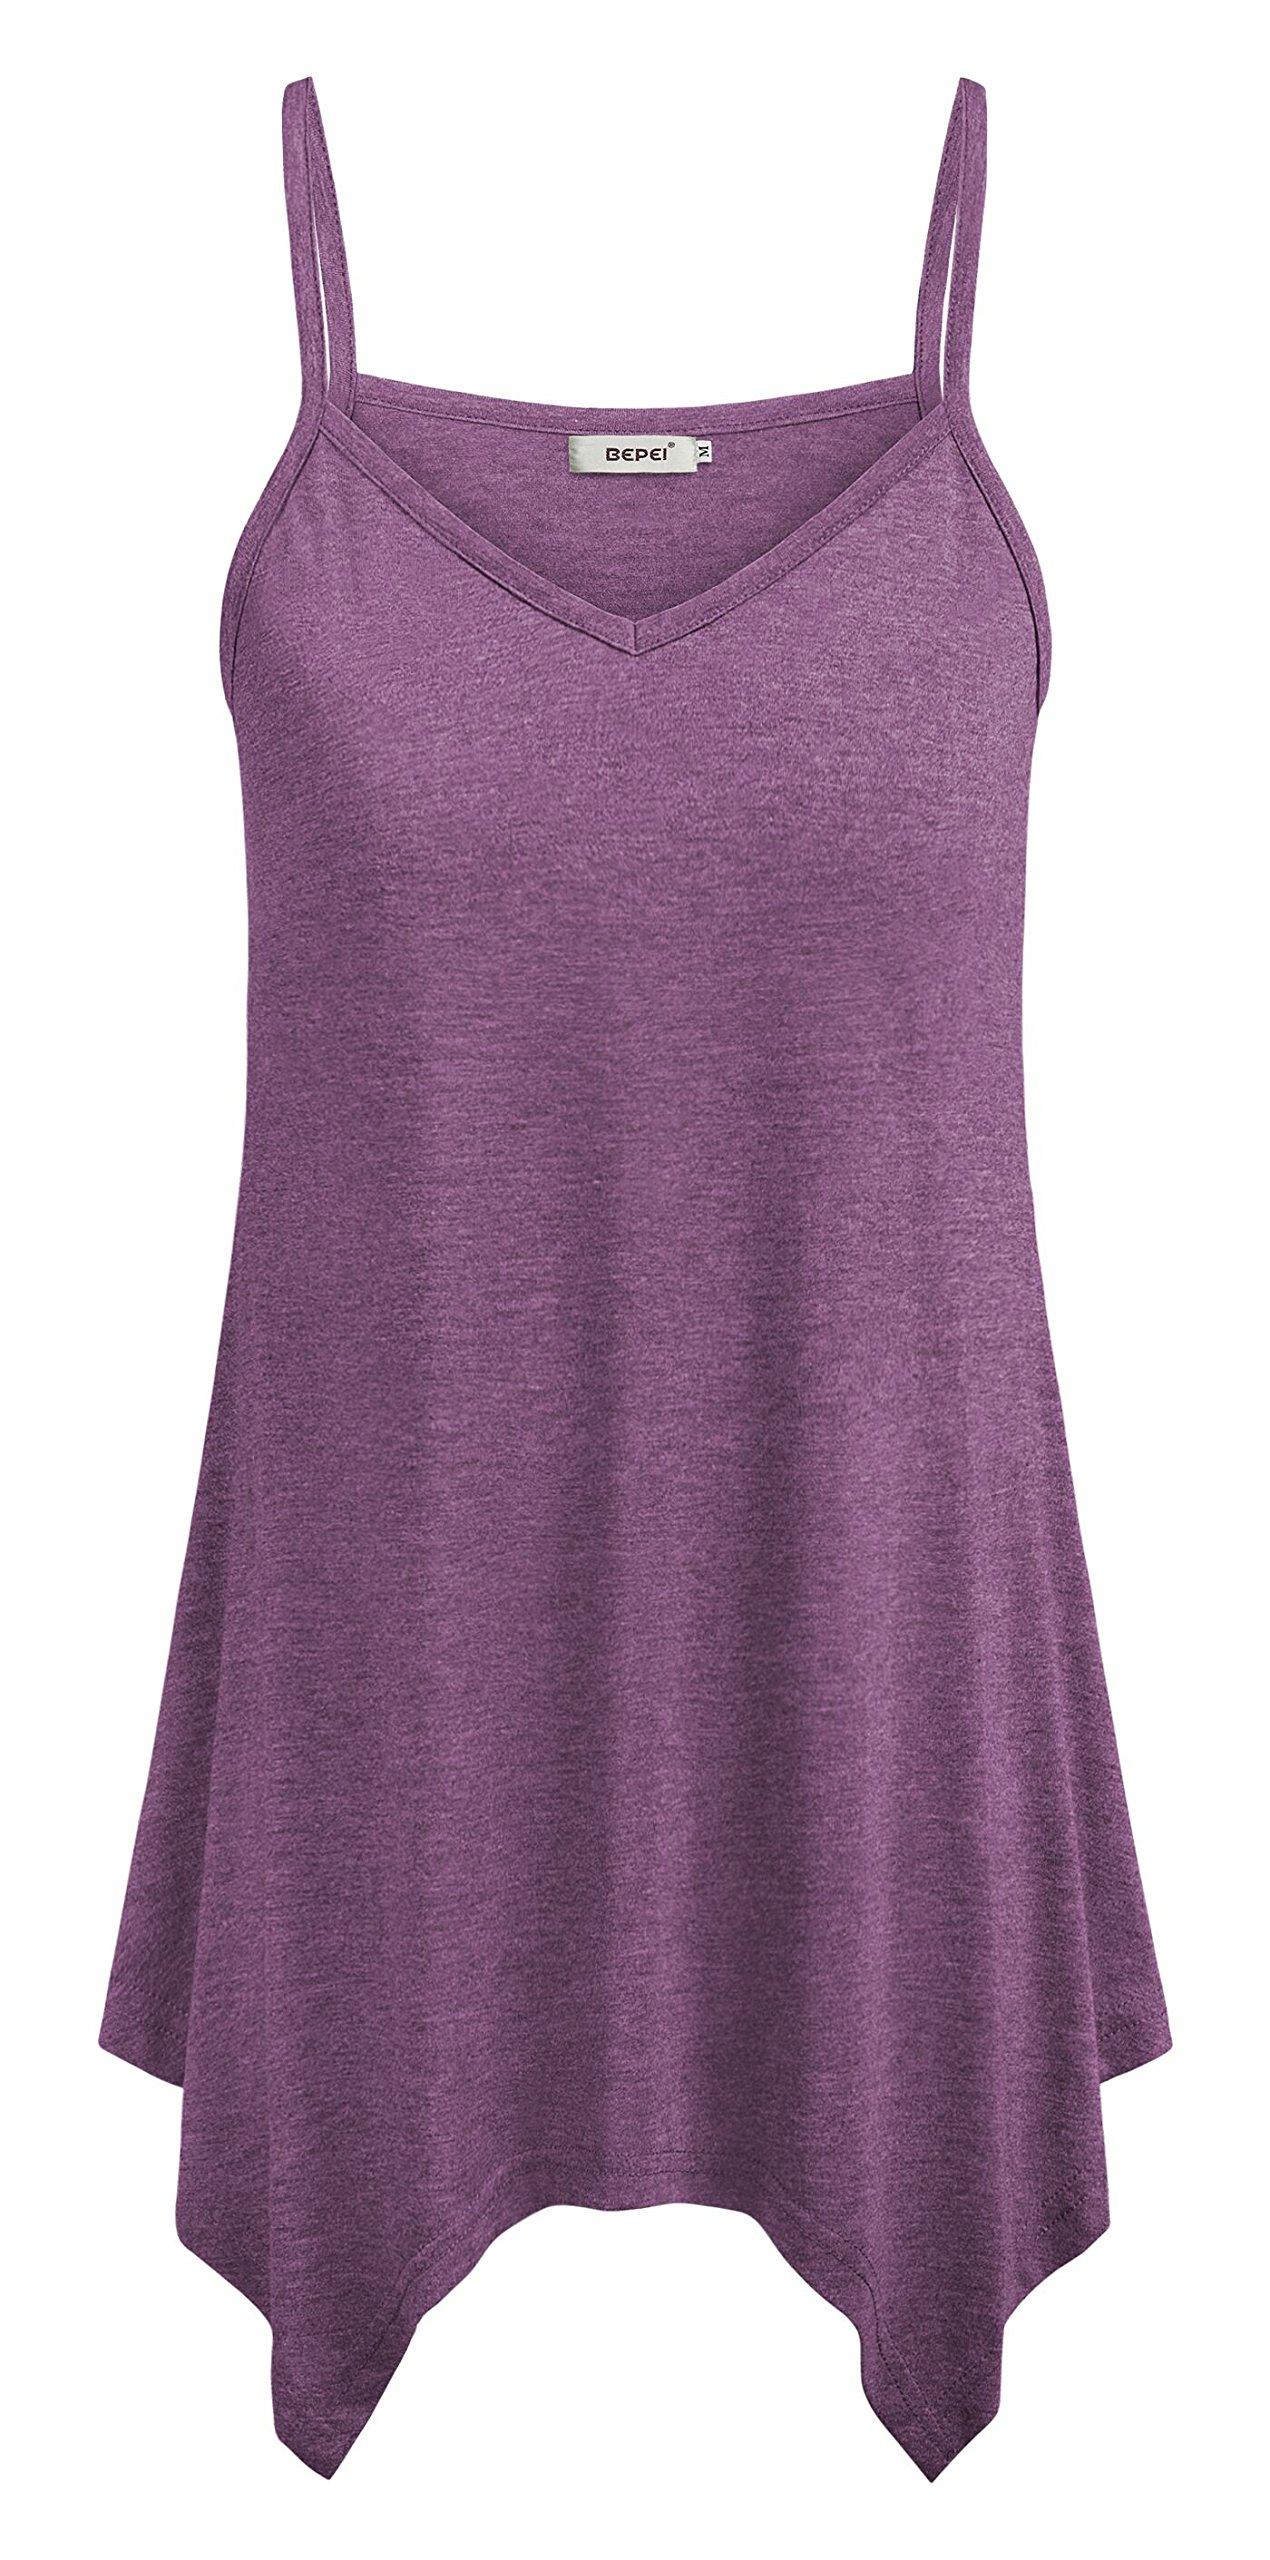 7e47d7ae064 Galleon - BEPEI Lady Tunic Tops For Summer, Loose Comfy A Line Blouses  Knitted Fit And Flare Plus Size Cami Tanks For Women Purple Size 2XL